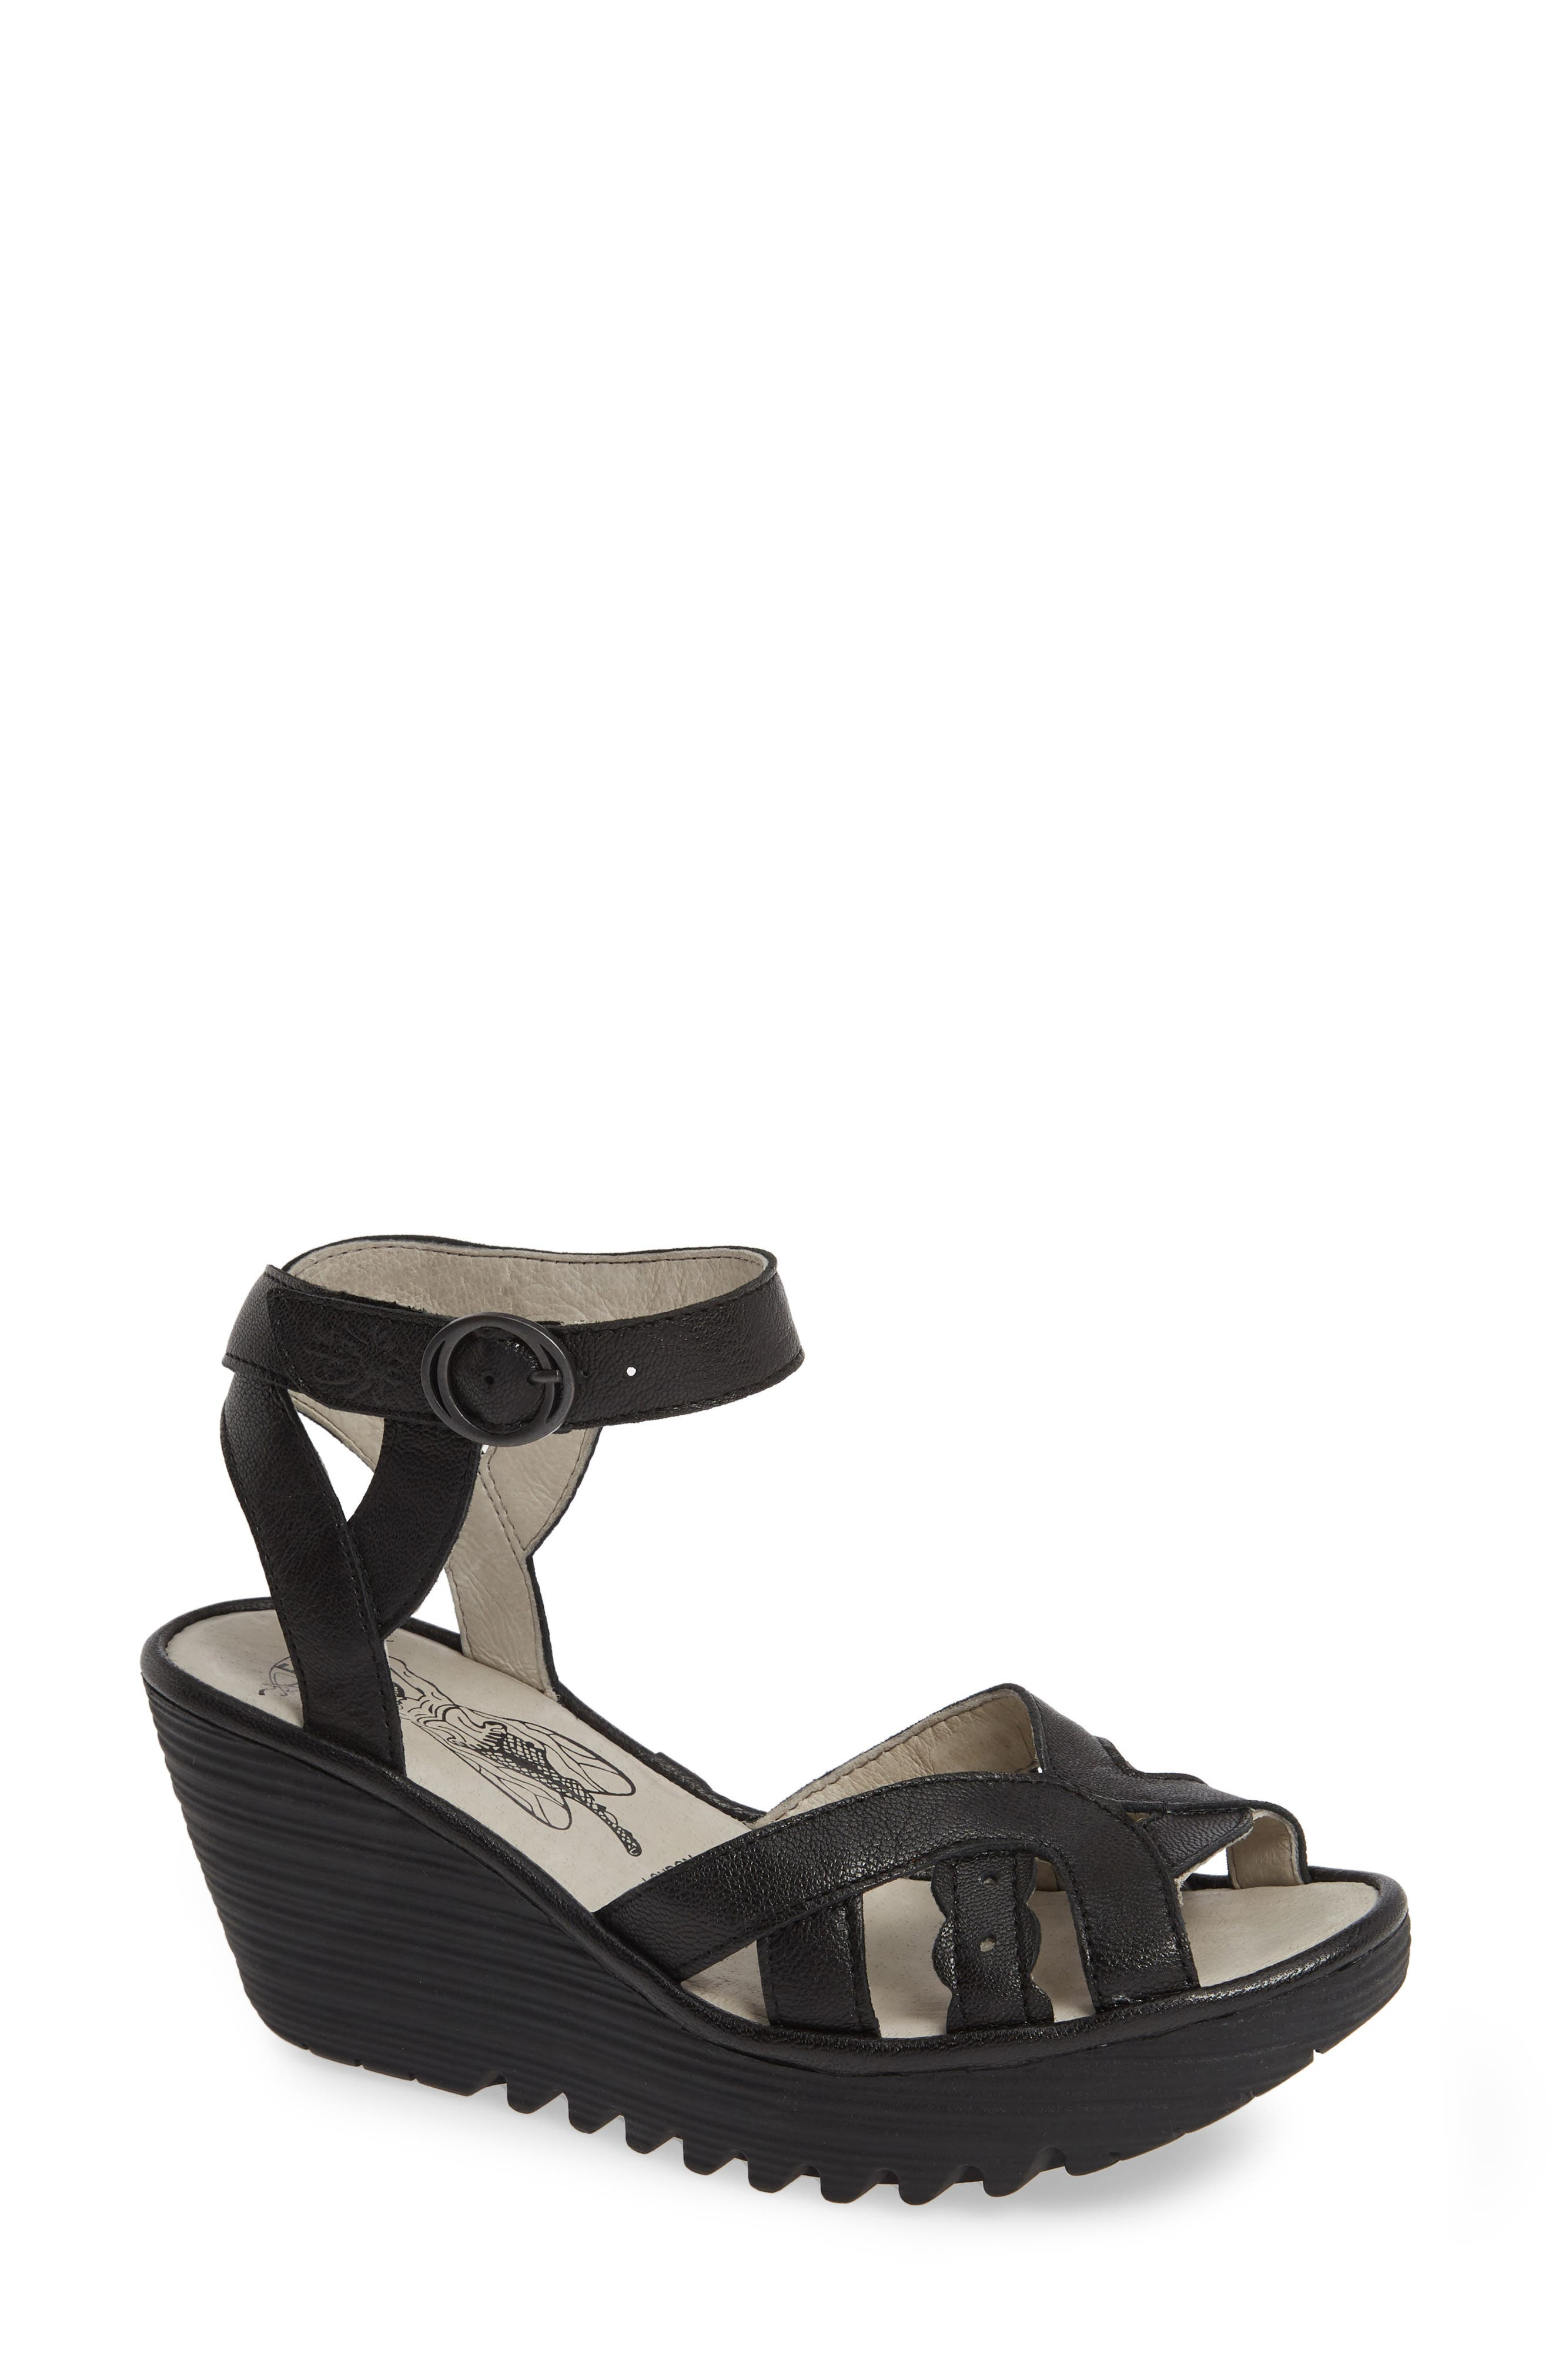 FLY LONDON,                             Yrat Wedge Sandal,                             Main thumbnail 1, color,                             BLACK LEATHER